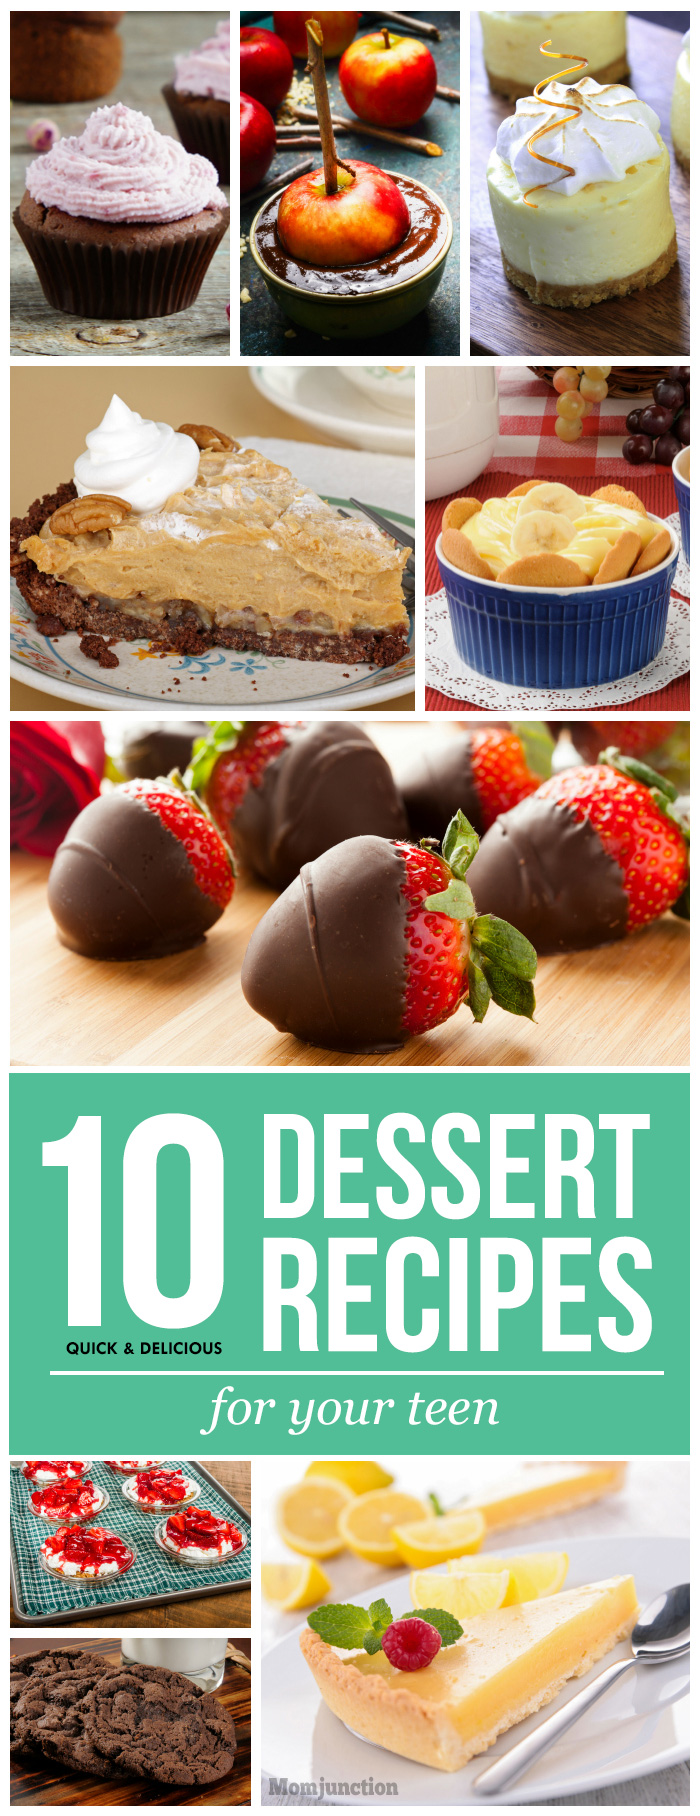 10 and simple dessert recipes for